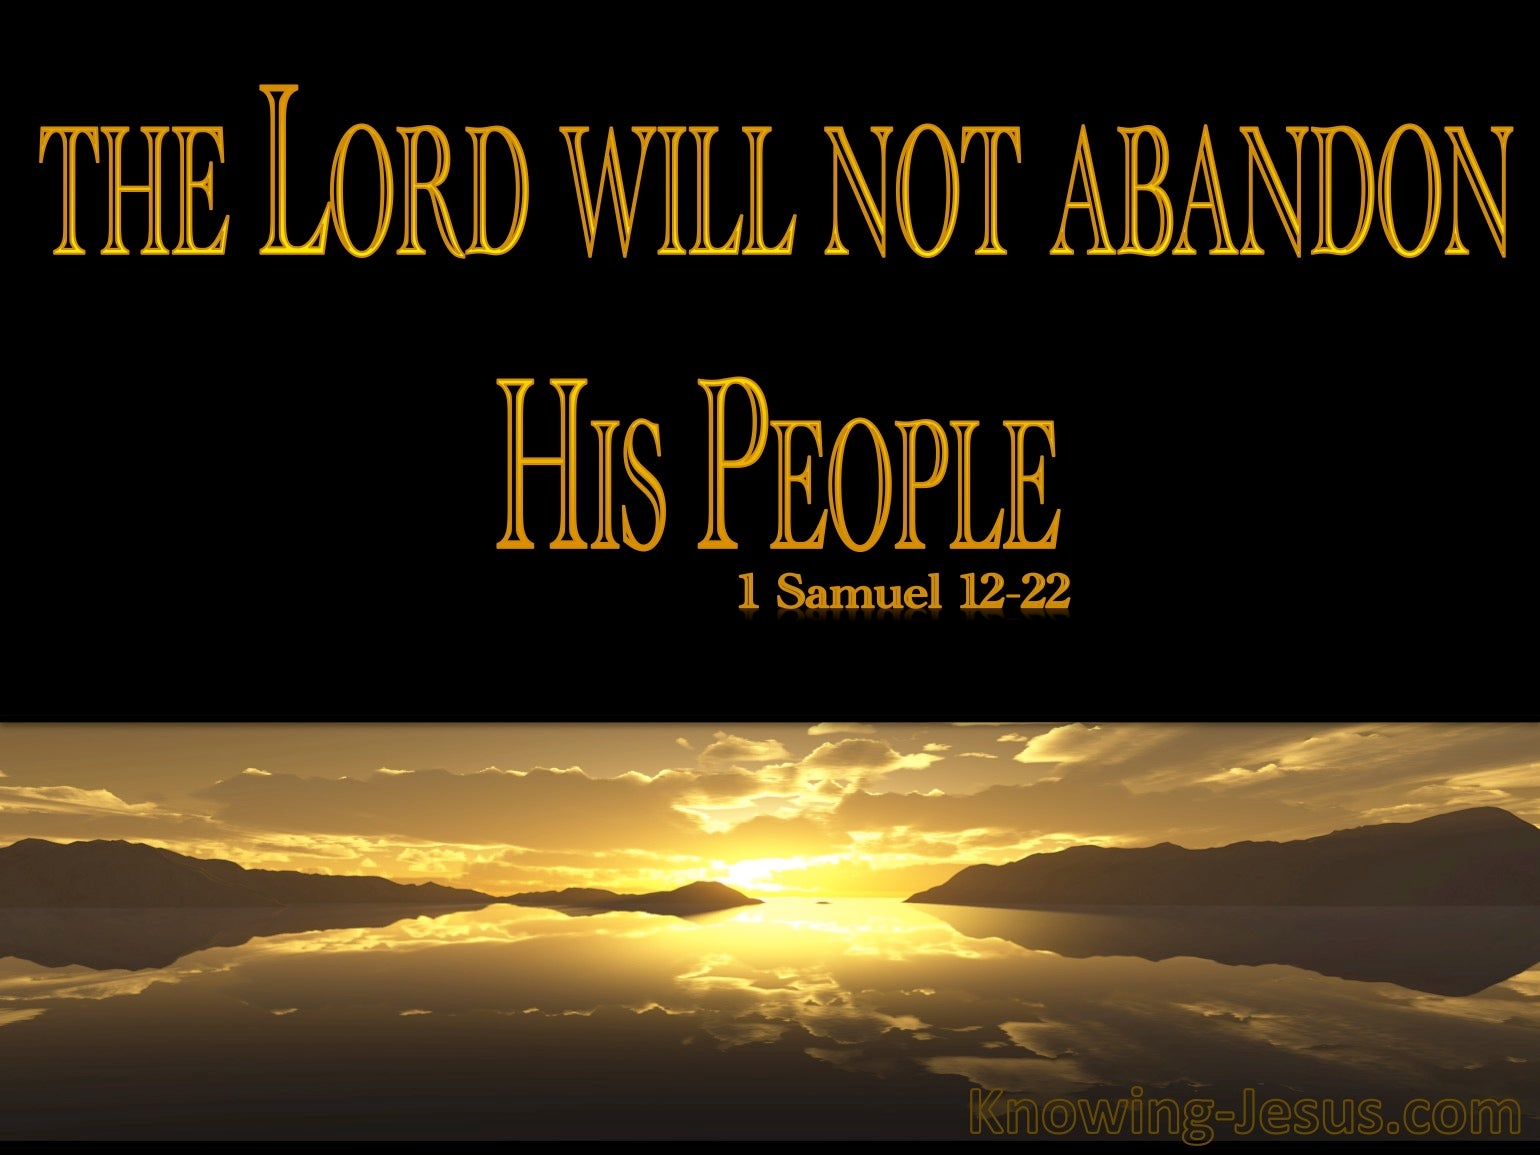 What Does 1 Samuel 12:22 Mean?